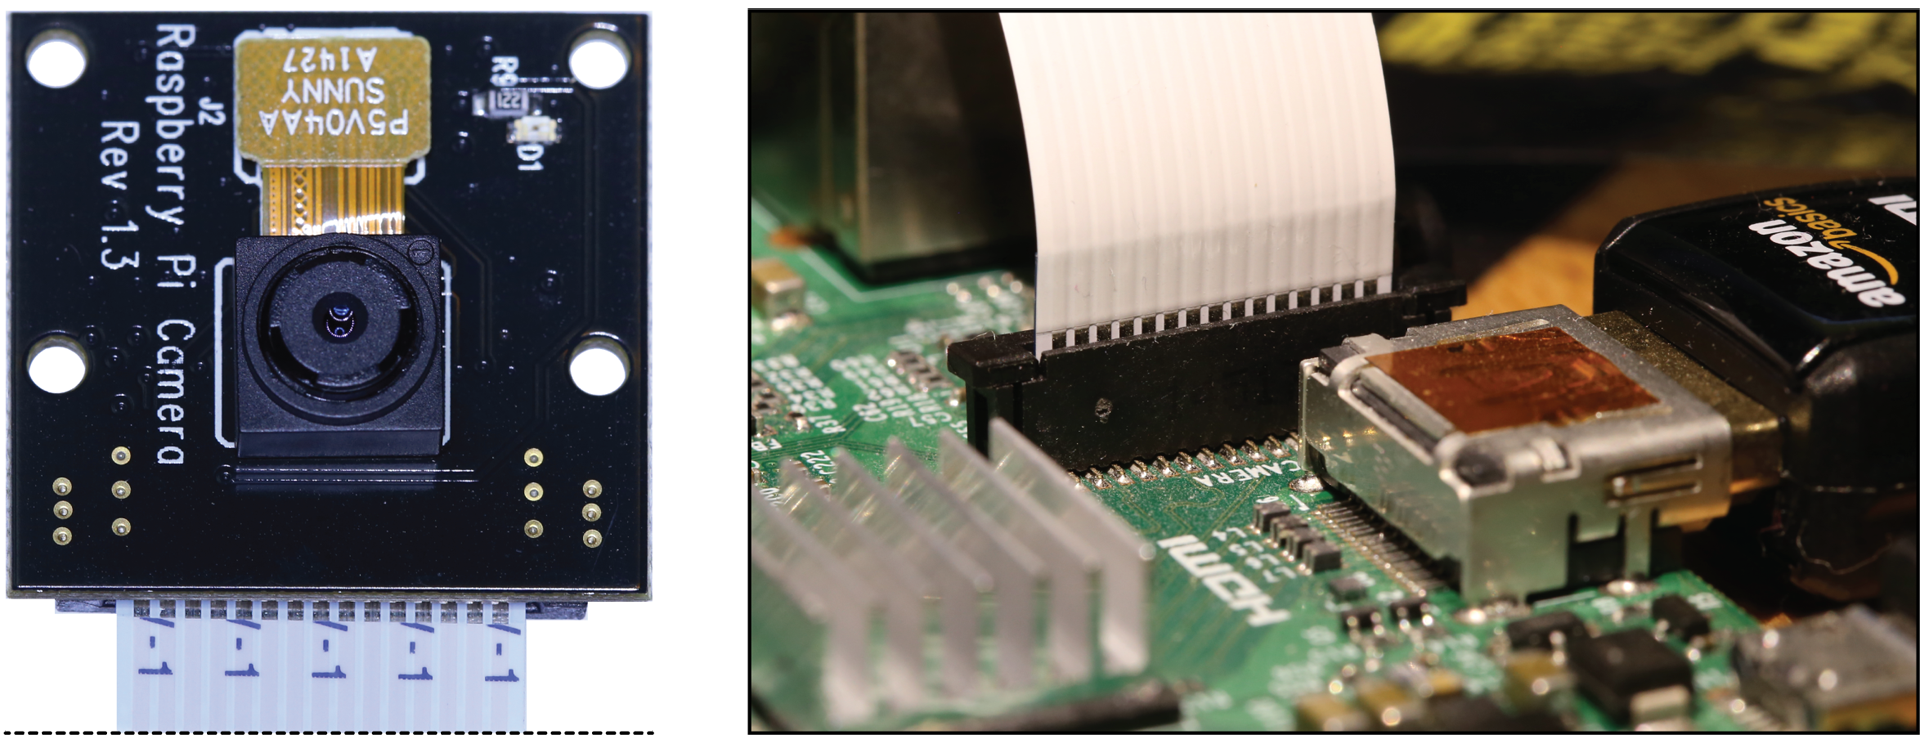 Chapter 15: Images, Video, and Audio – Exploring Raspberry Pi